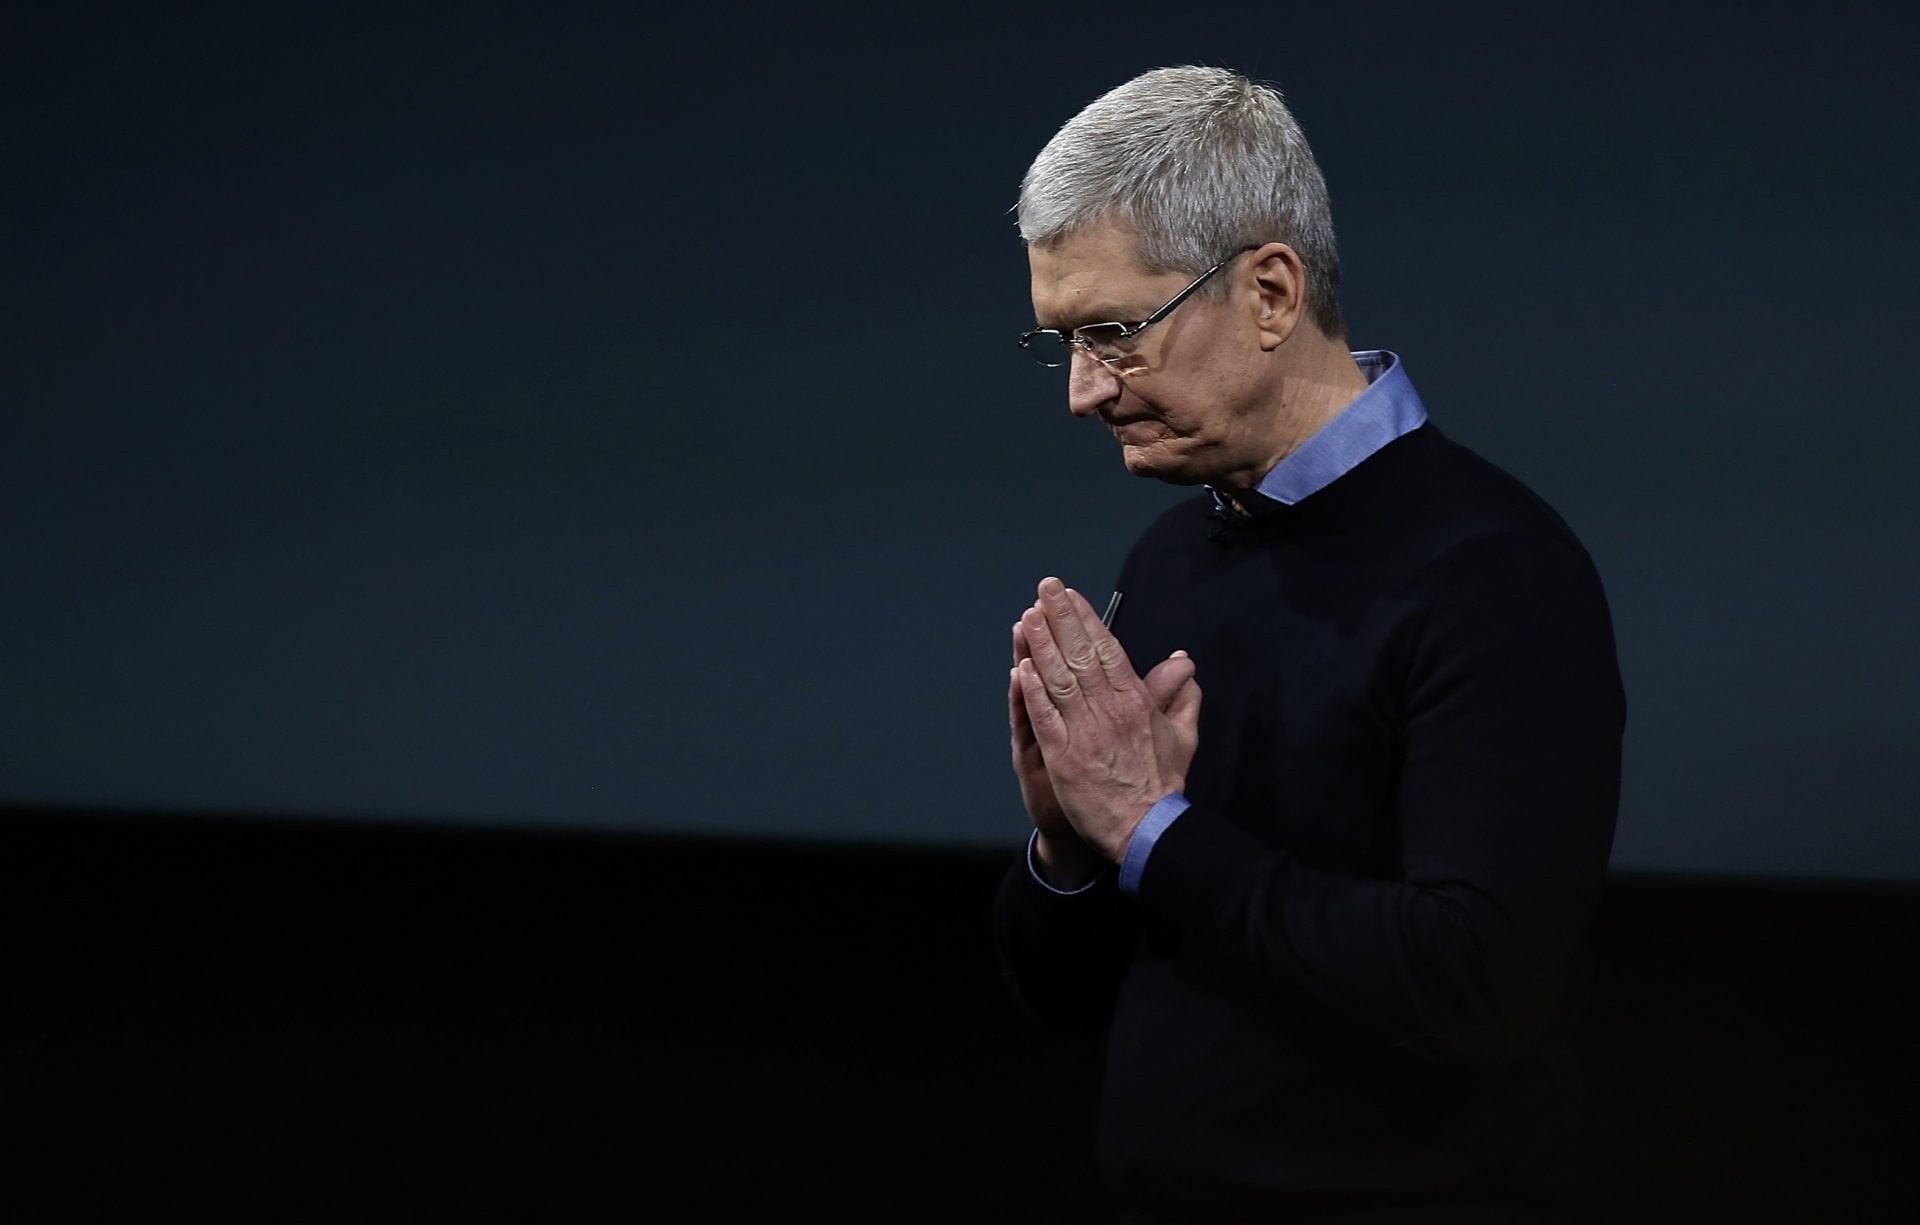 Affected by the epidemic, Apple predicts that this quarter's revenue will not meet the standards